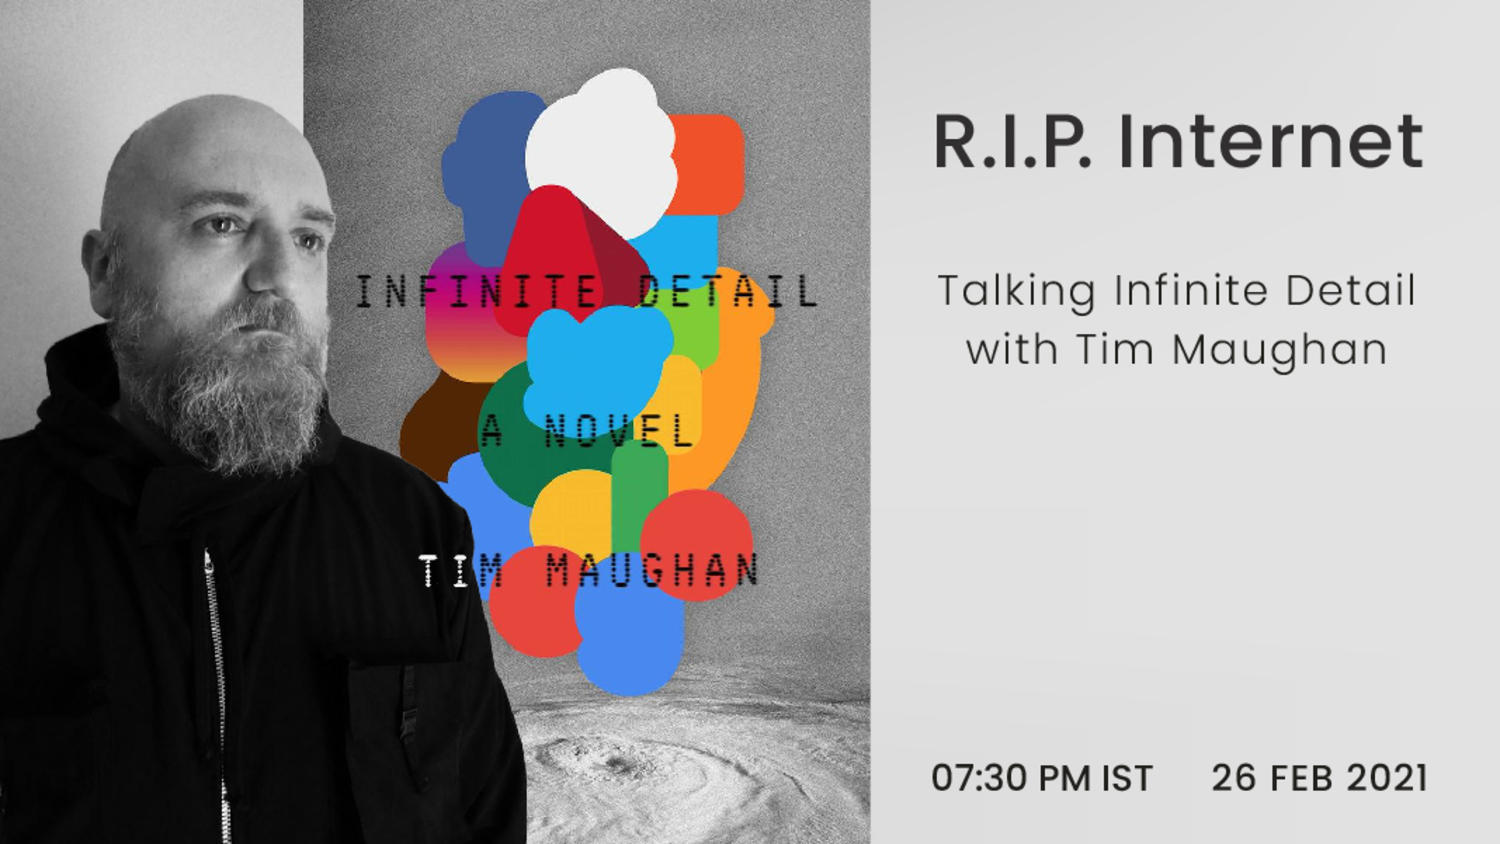 R.I.P. Internet: talking Infinite Detail with Tim Maughan